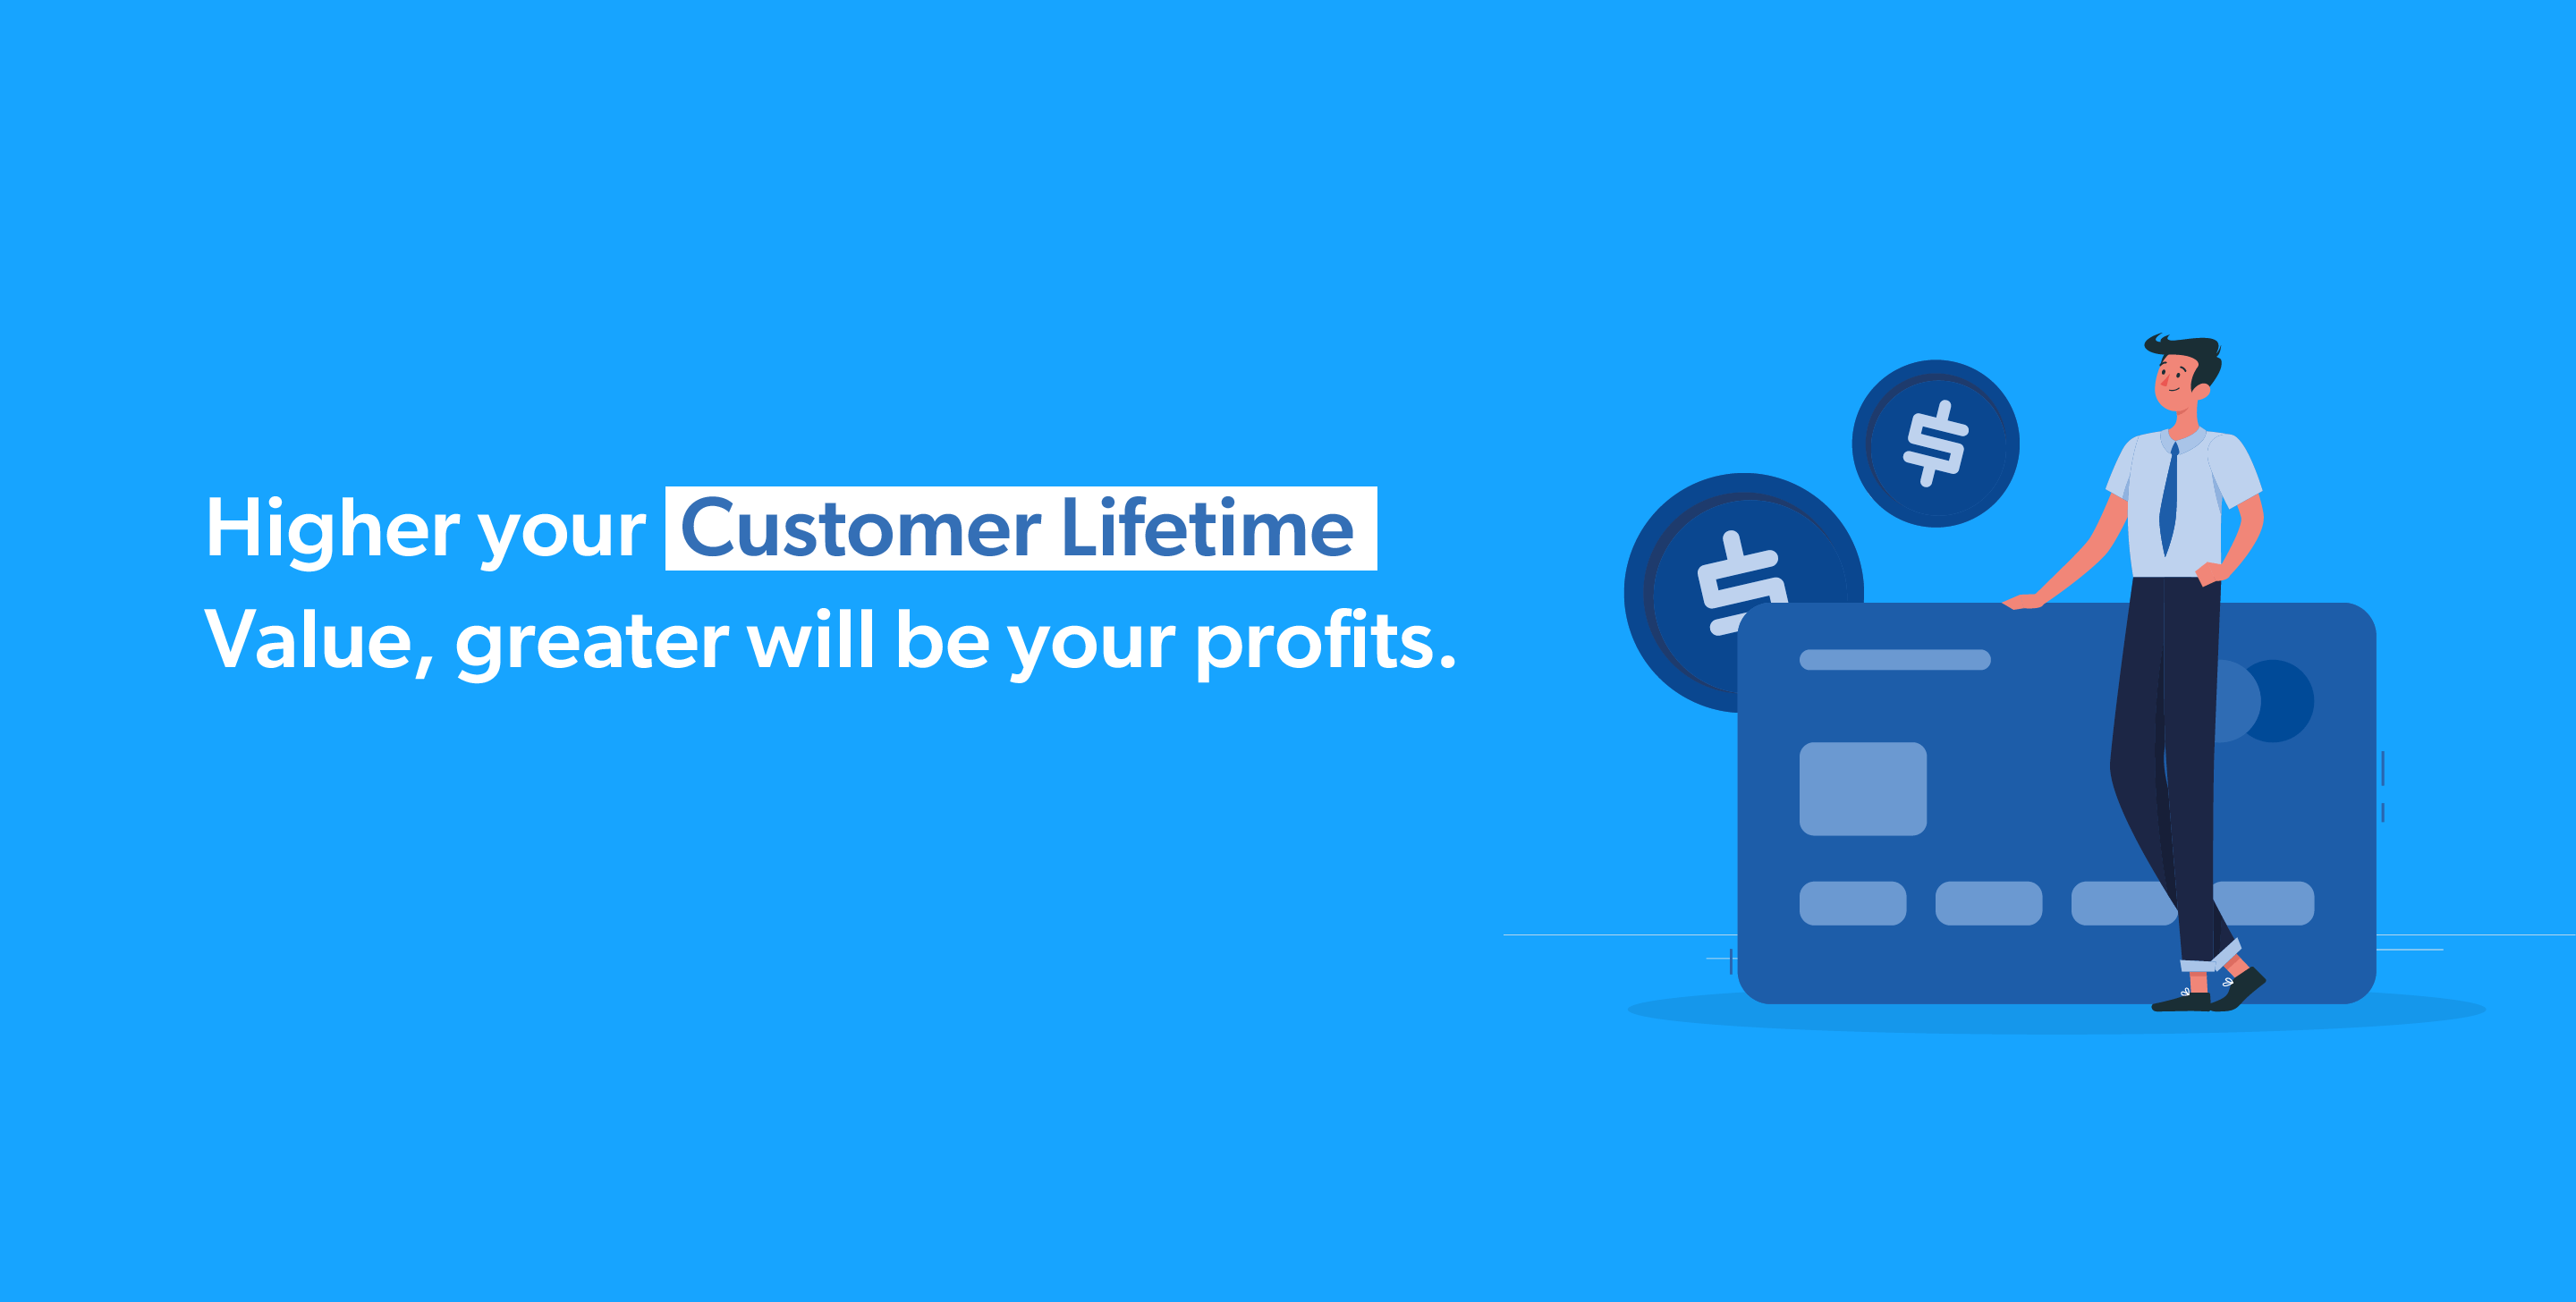 Higher your Customer Lifetime Value, greater will be your profits.